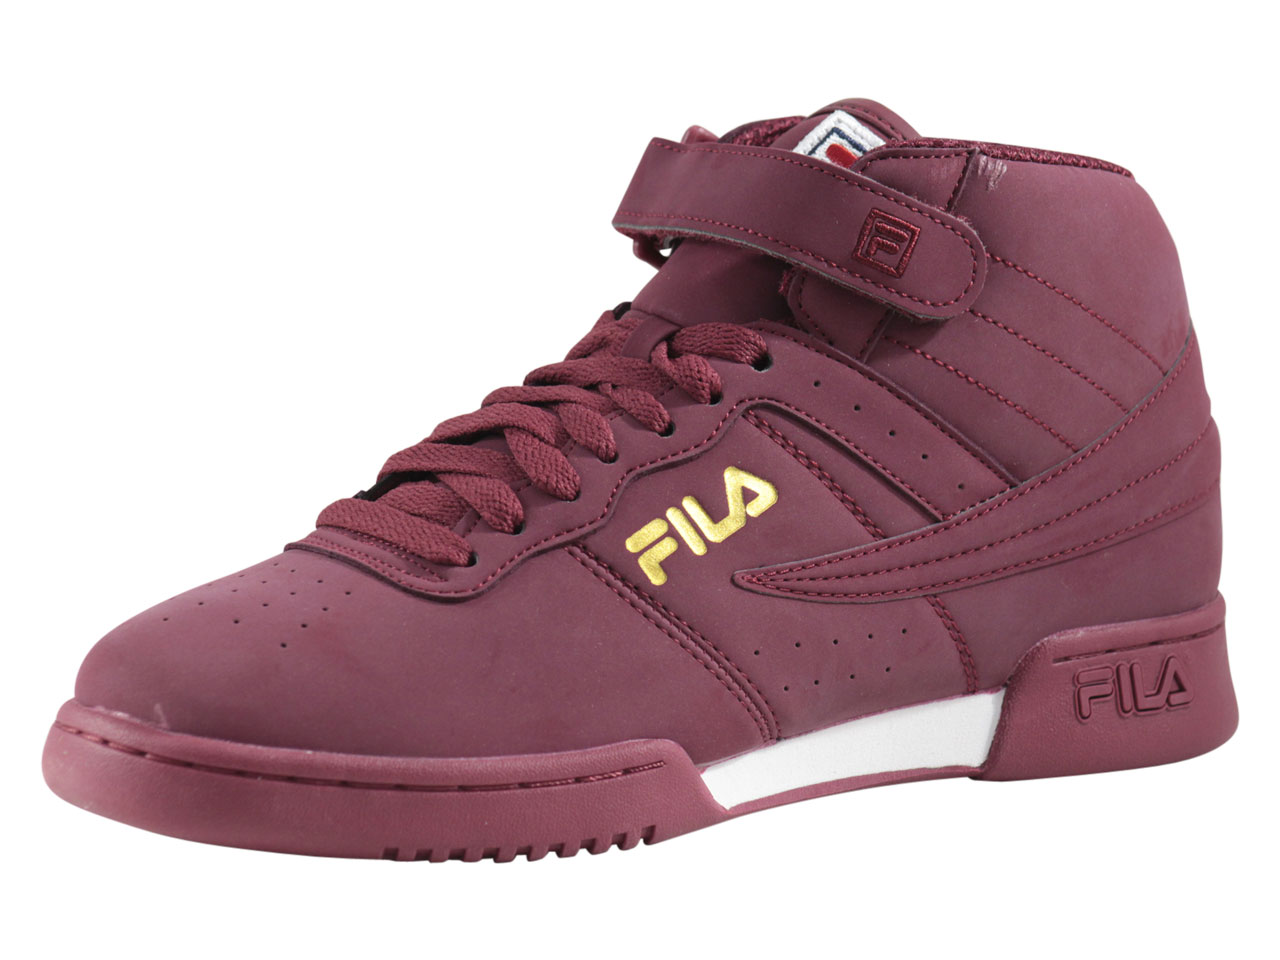 ad28834b13 Details about Fila Men's F-13-Lineker Tibetan Red/White/Marigold Sneakers  Shoes